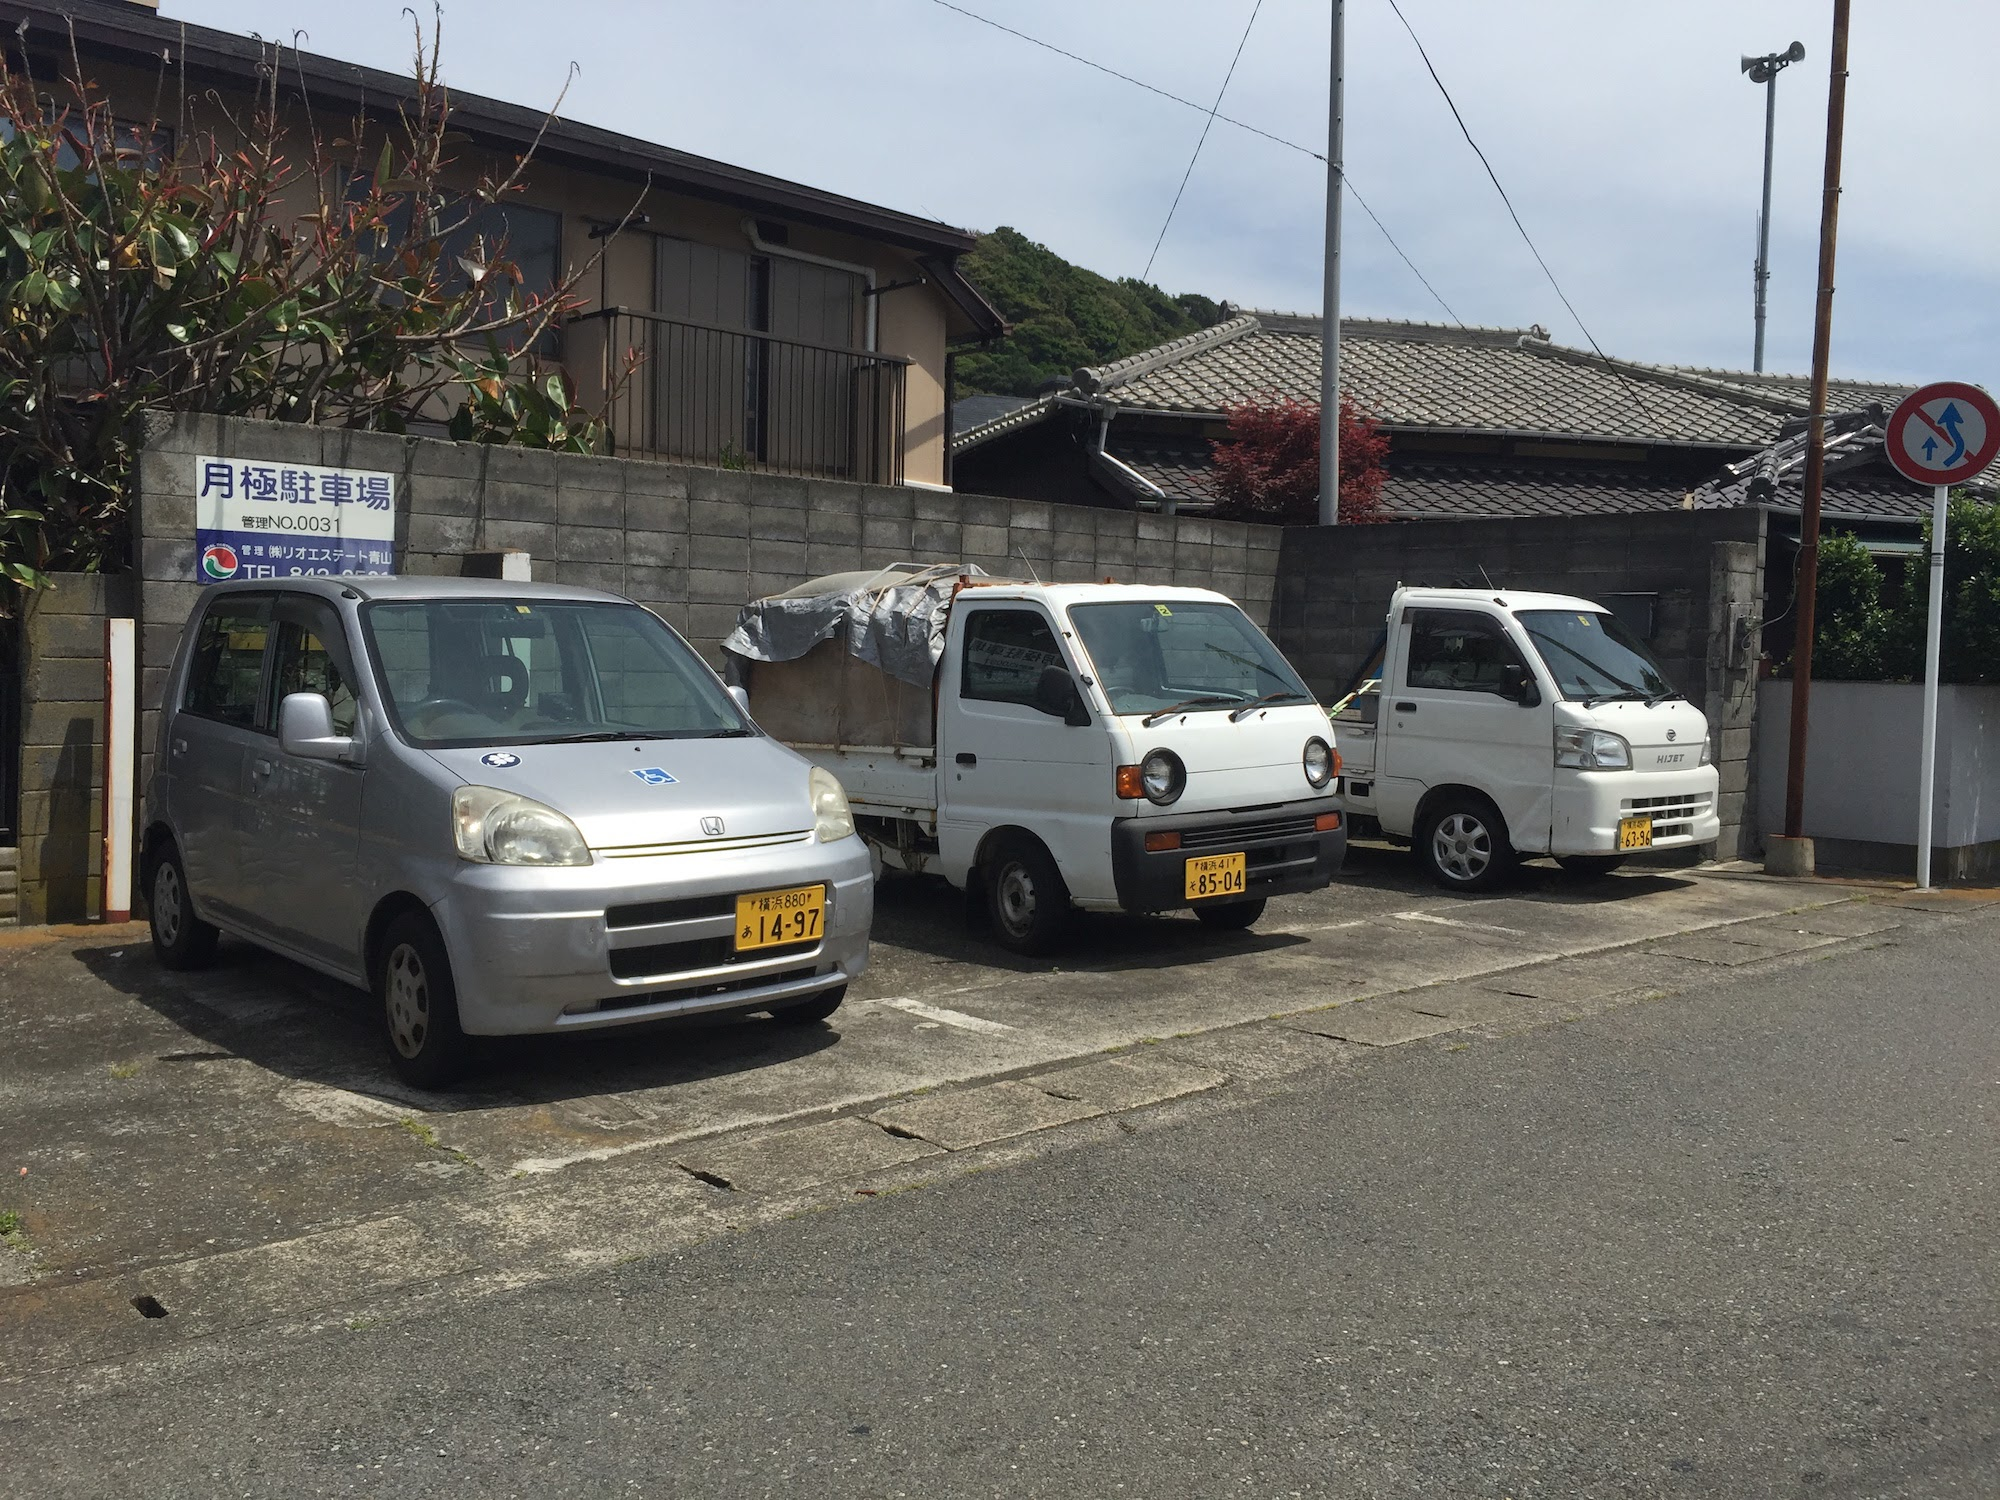 Parking lot filled with kei cars